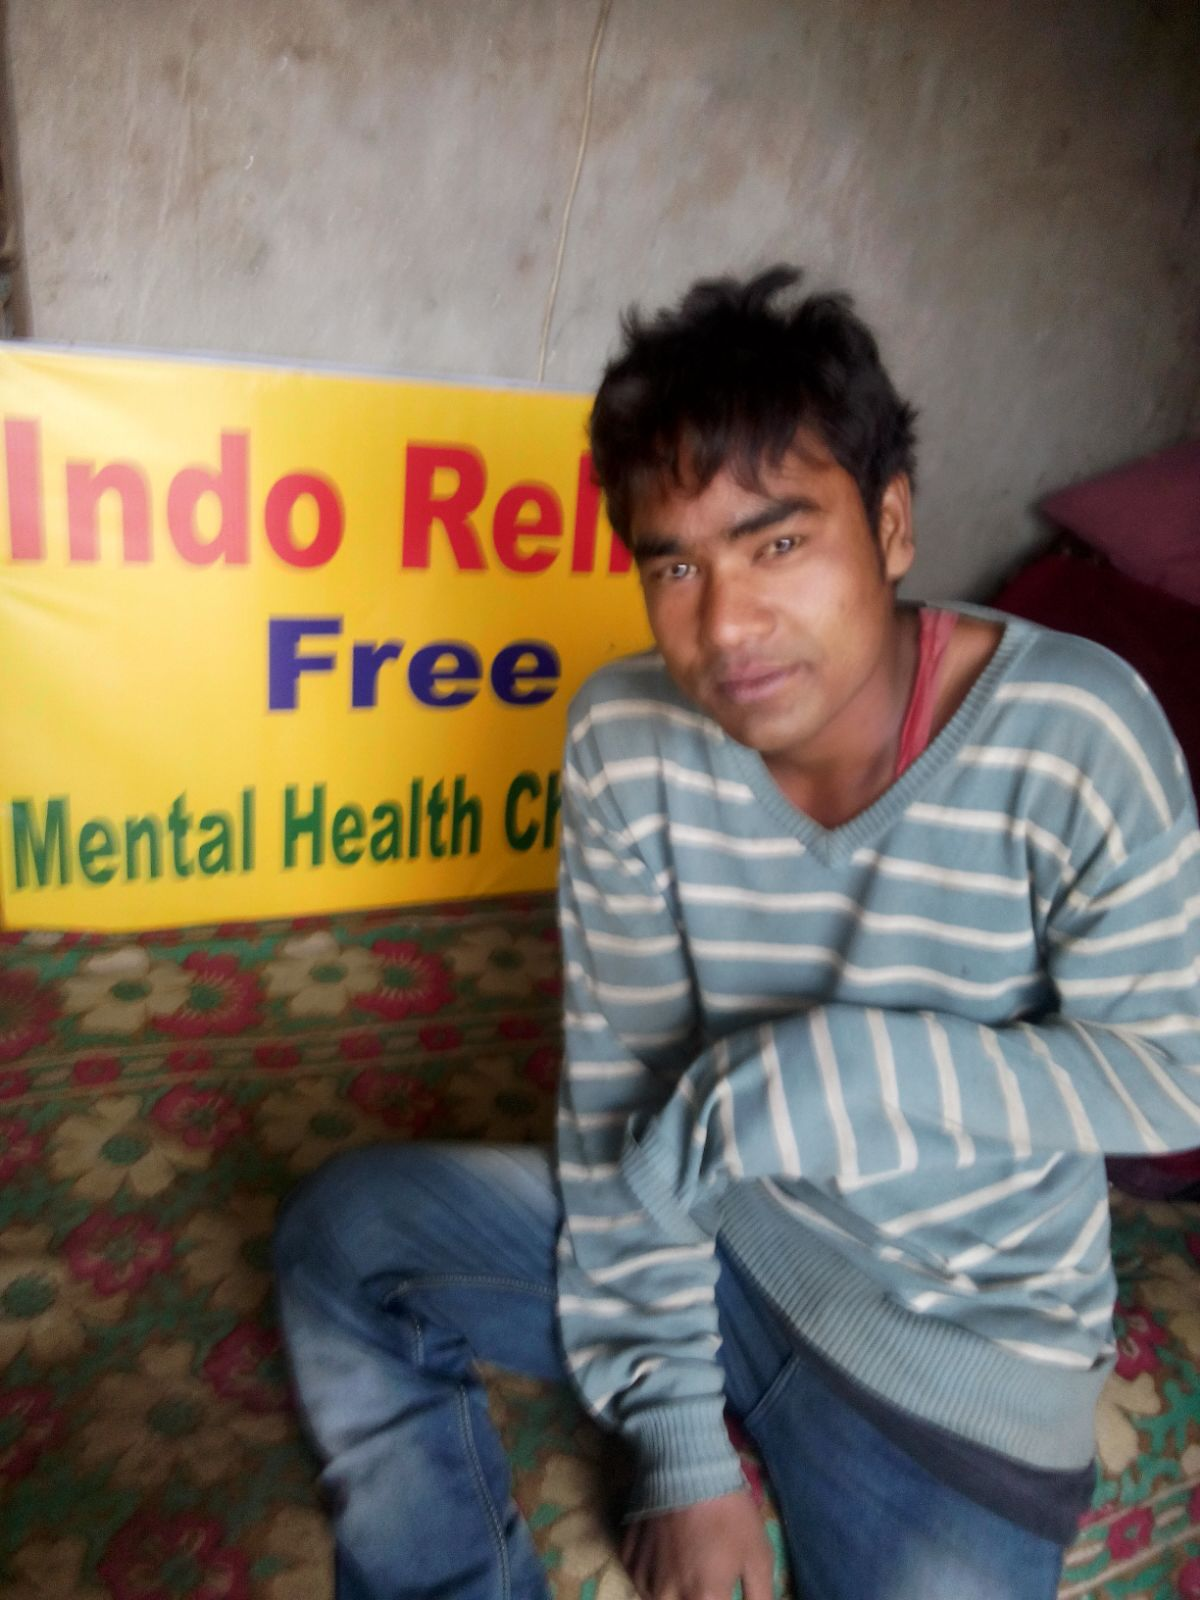 Meet Chintan. He says that he hears voices that tell him to do dangerous things. He told us that one of the voices was telling him to jump in front of a train. We are providing him with medication and counseling for schizophrenia.